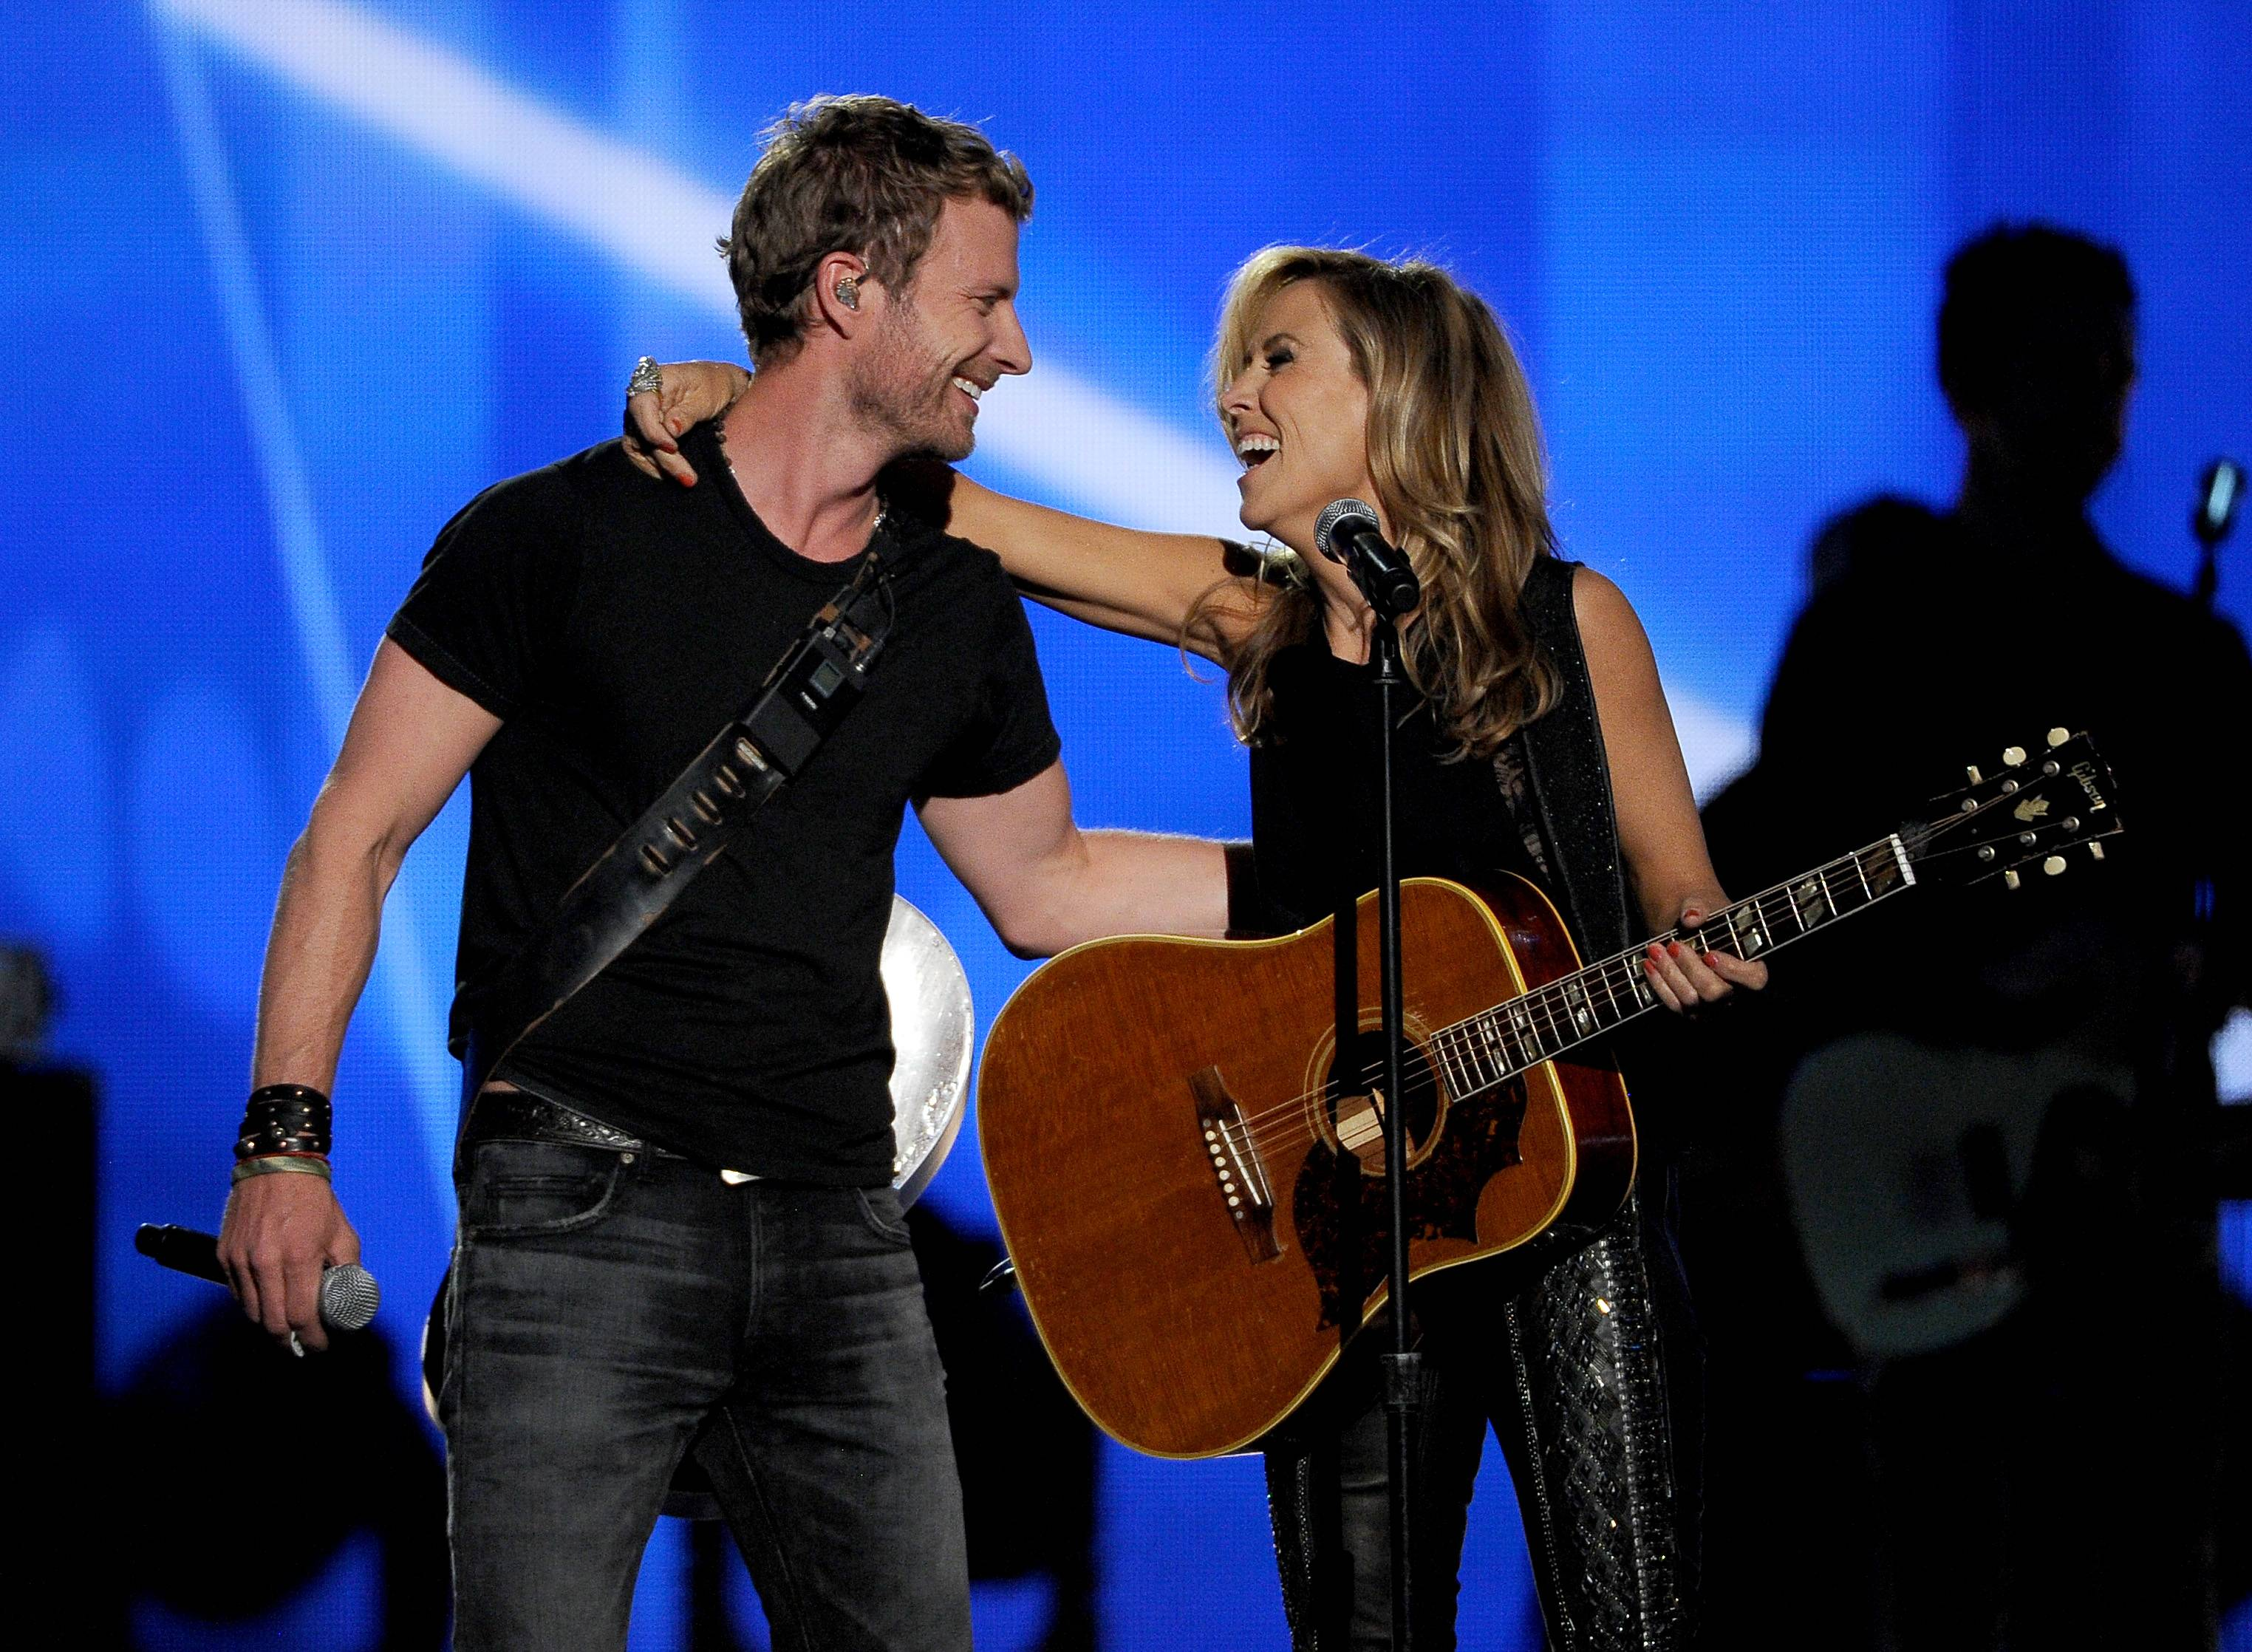 Dierks Bentley, left, and Sheryl Crow perform on stage at the 49th annual Academy of Country Music Awards at the MGM Grand Garden Arena on Sunday in Las Vegas.